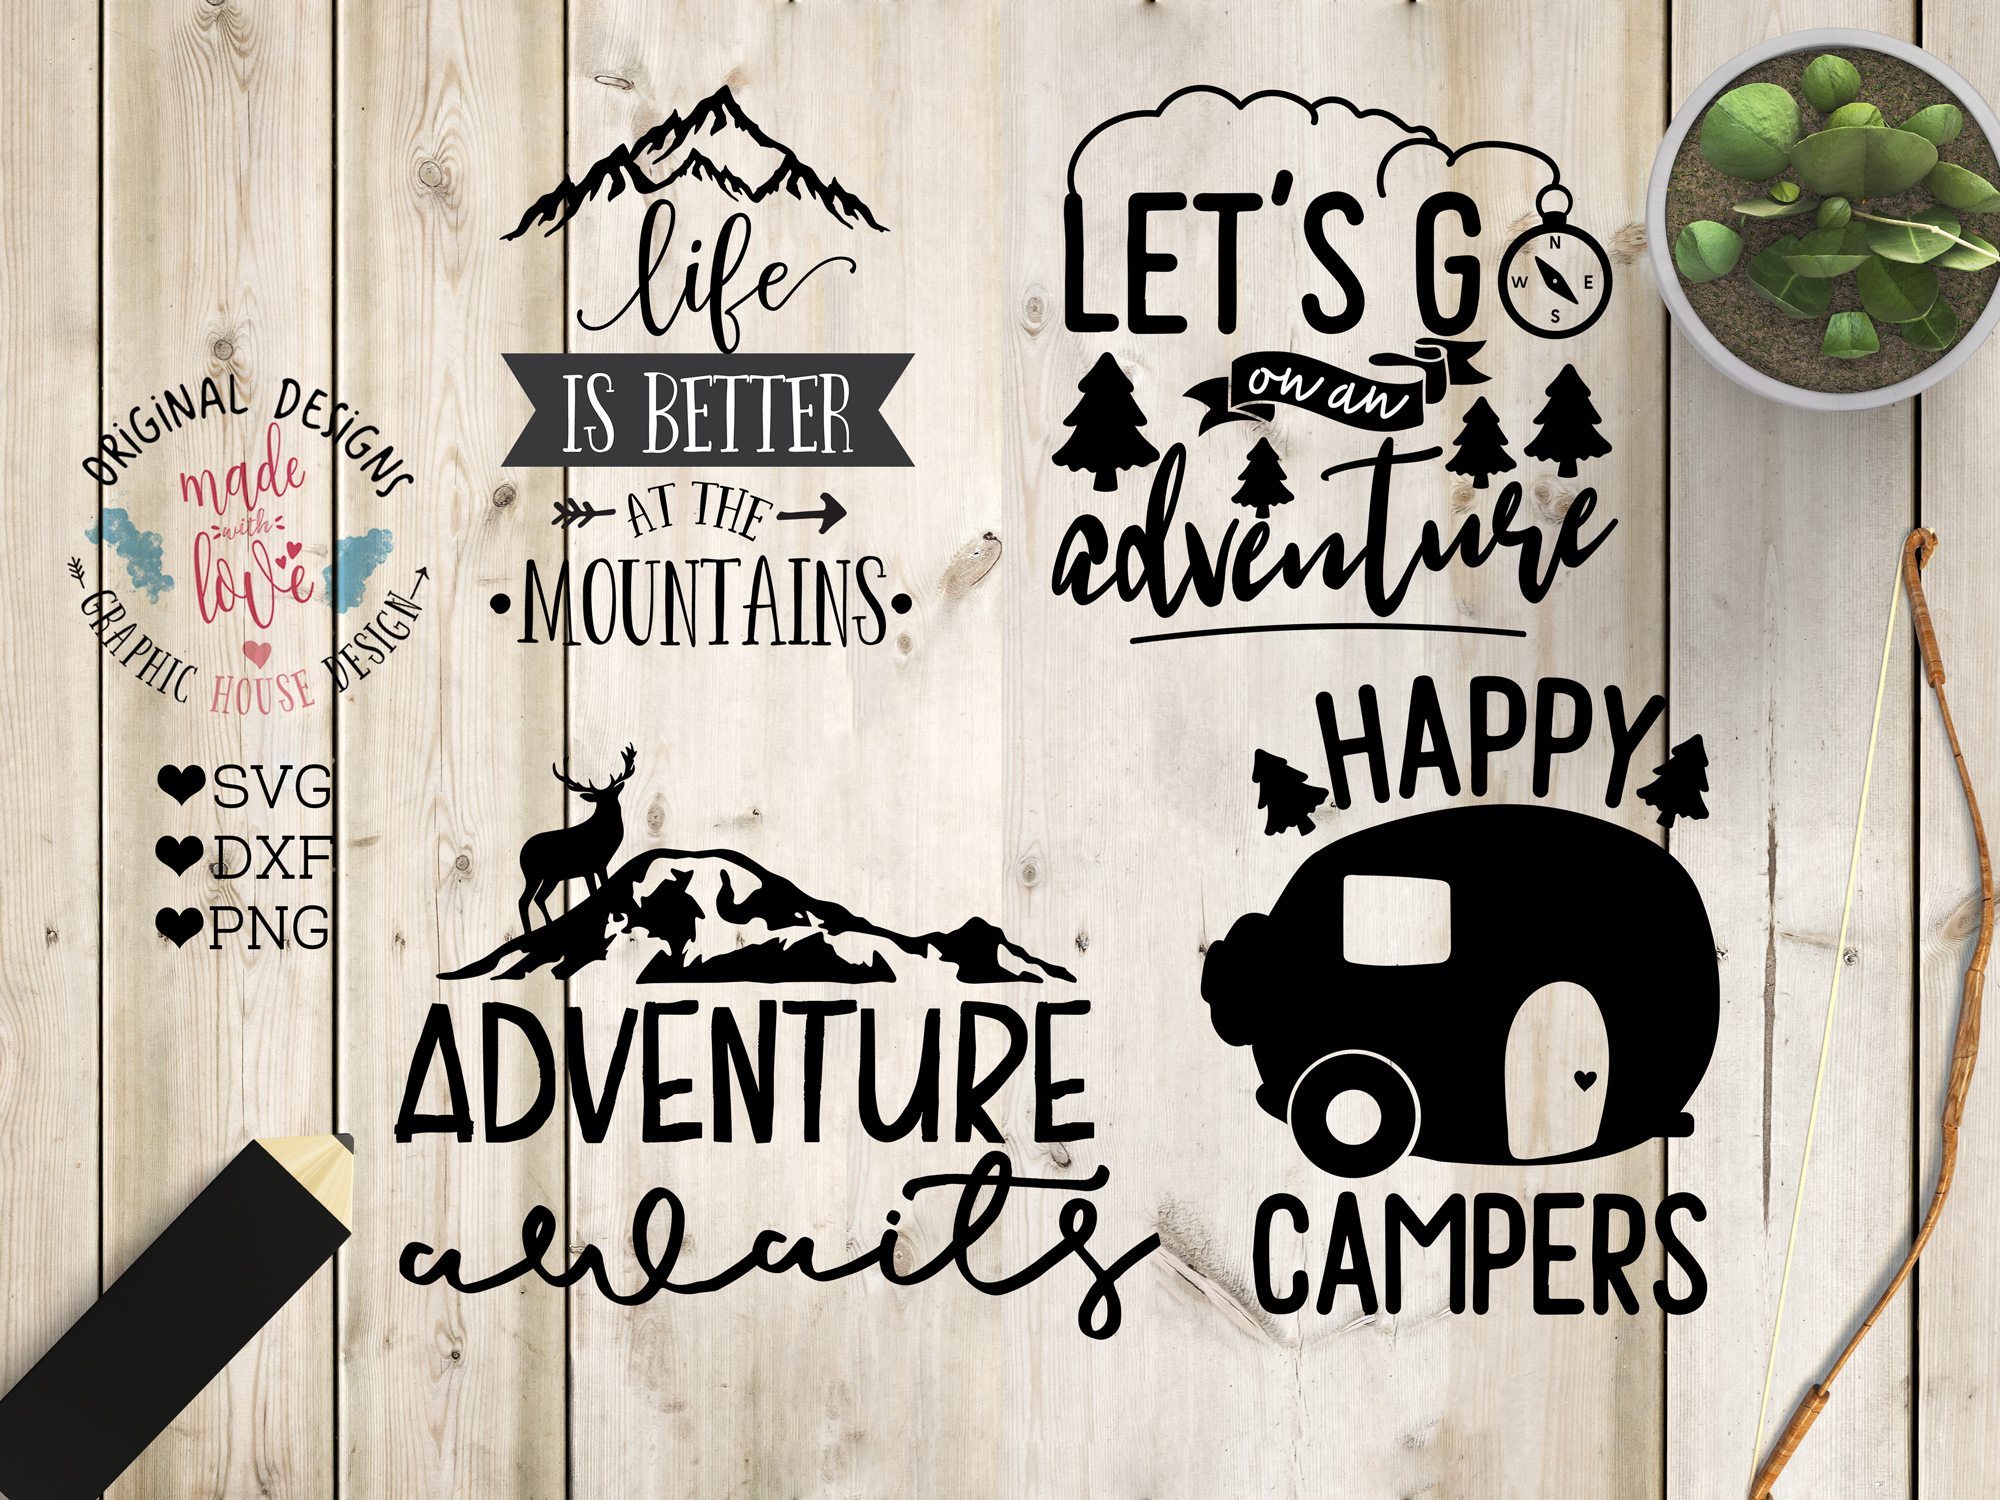 Adventure/Camping Cutting Files Bundle SVG, DXF, PNG example image 2